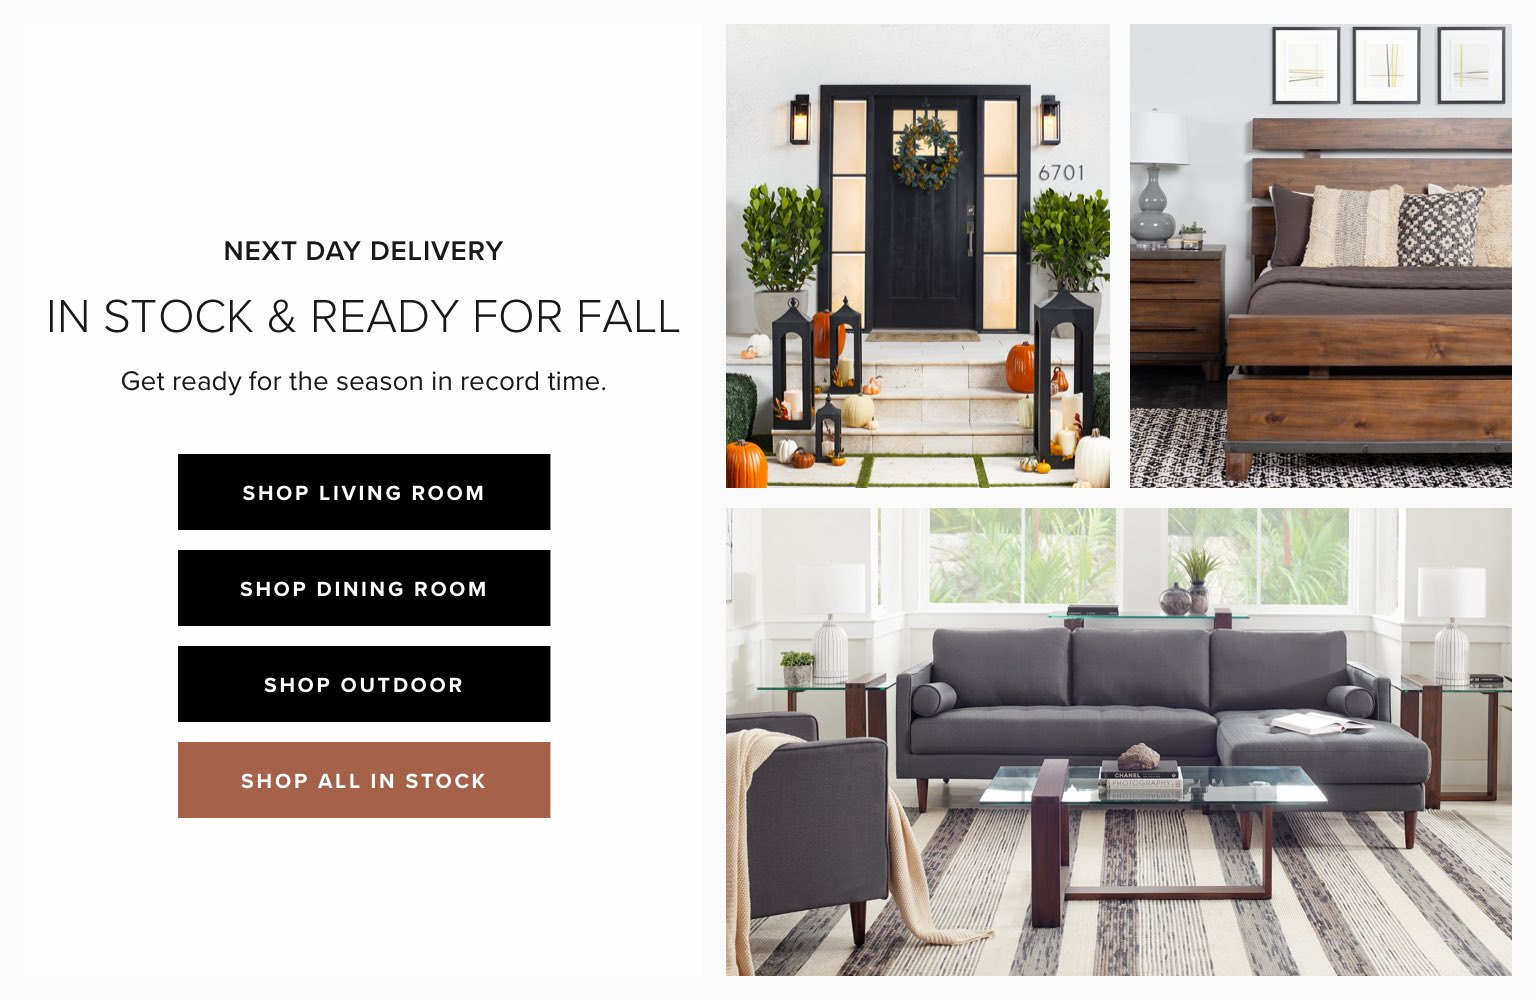 Next day delivery. In-stock and ready for fall. Get ready for the season in record time. Click to shop in-stock living room. Click to shop in-stock dining room. Click to shop in-stock outdoor. Click to shop all in-stock.